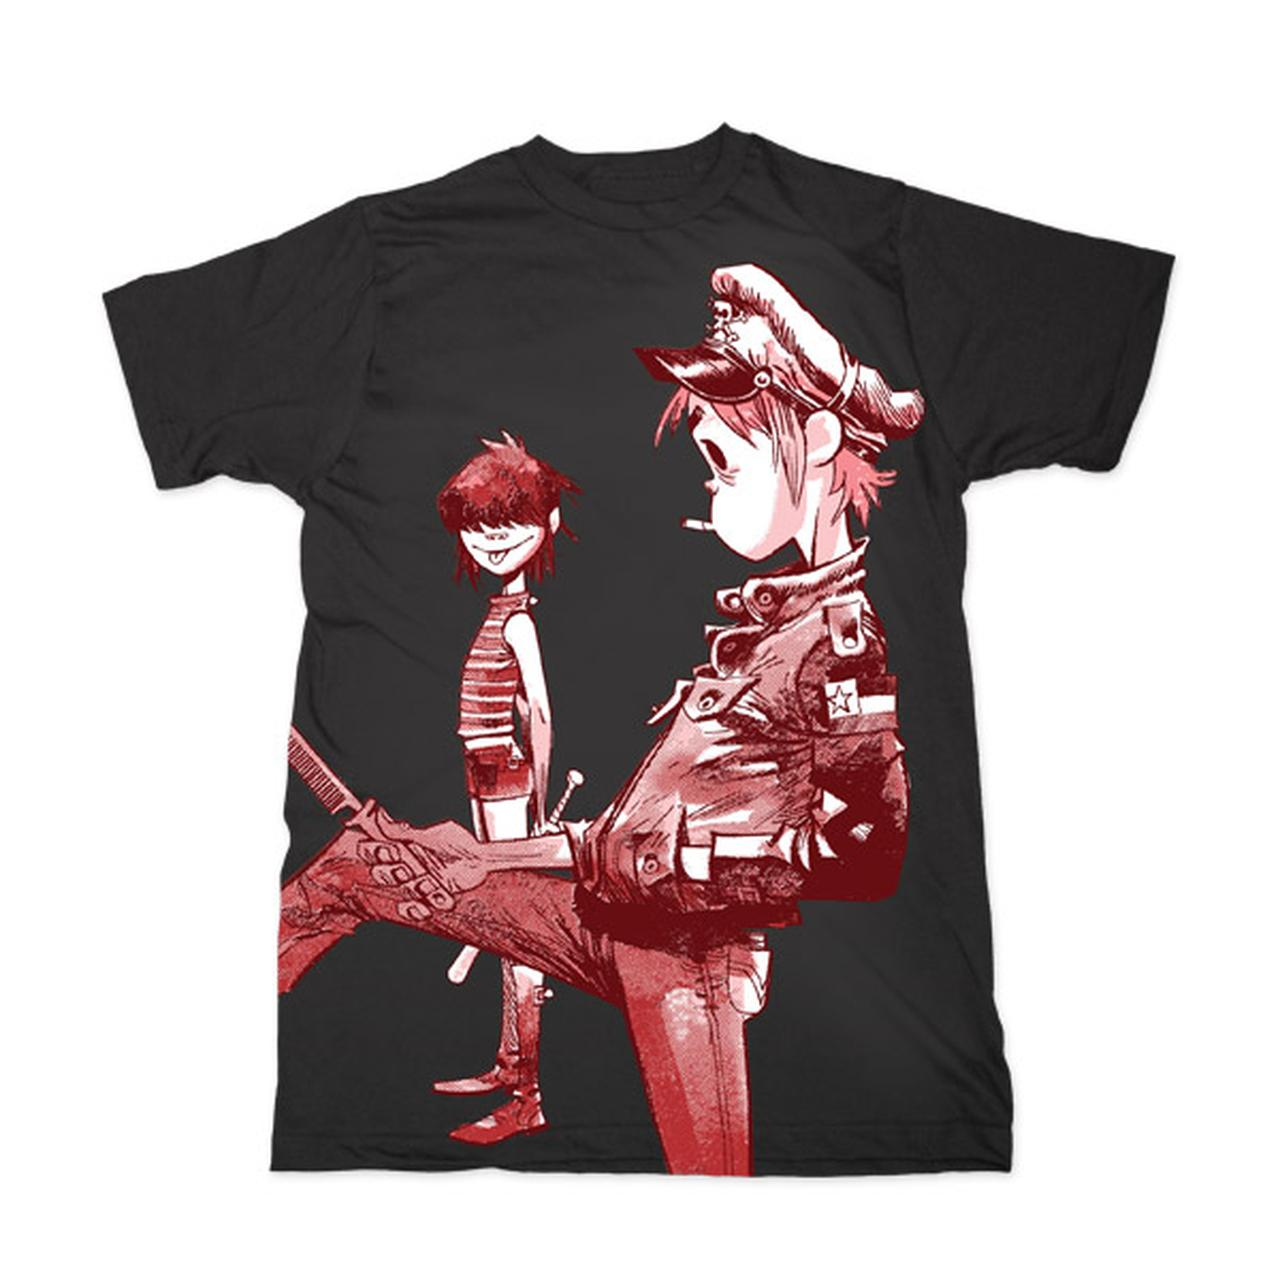 Gorillaz Band Artwork T Shirt